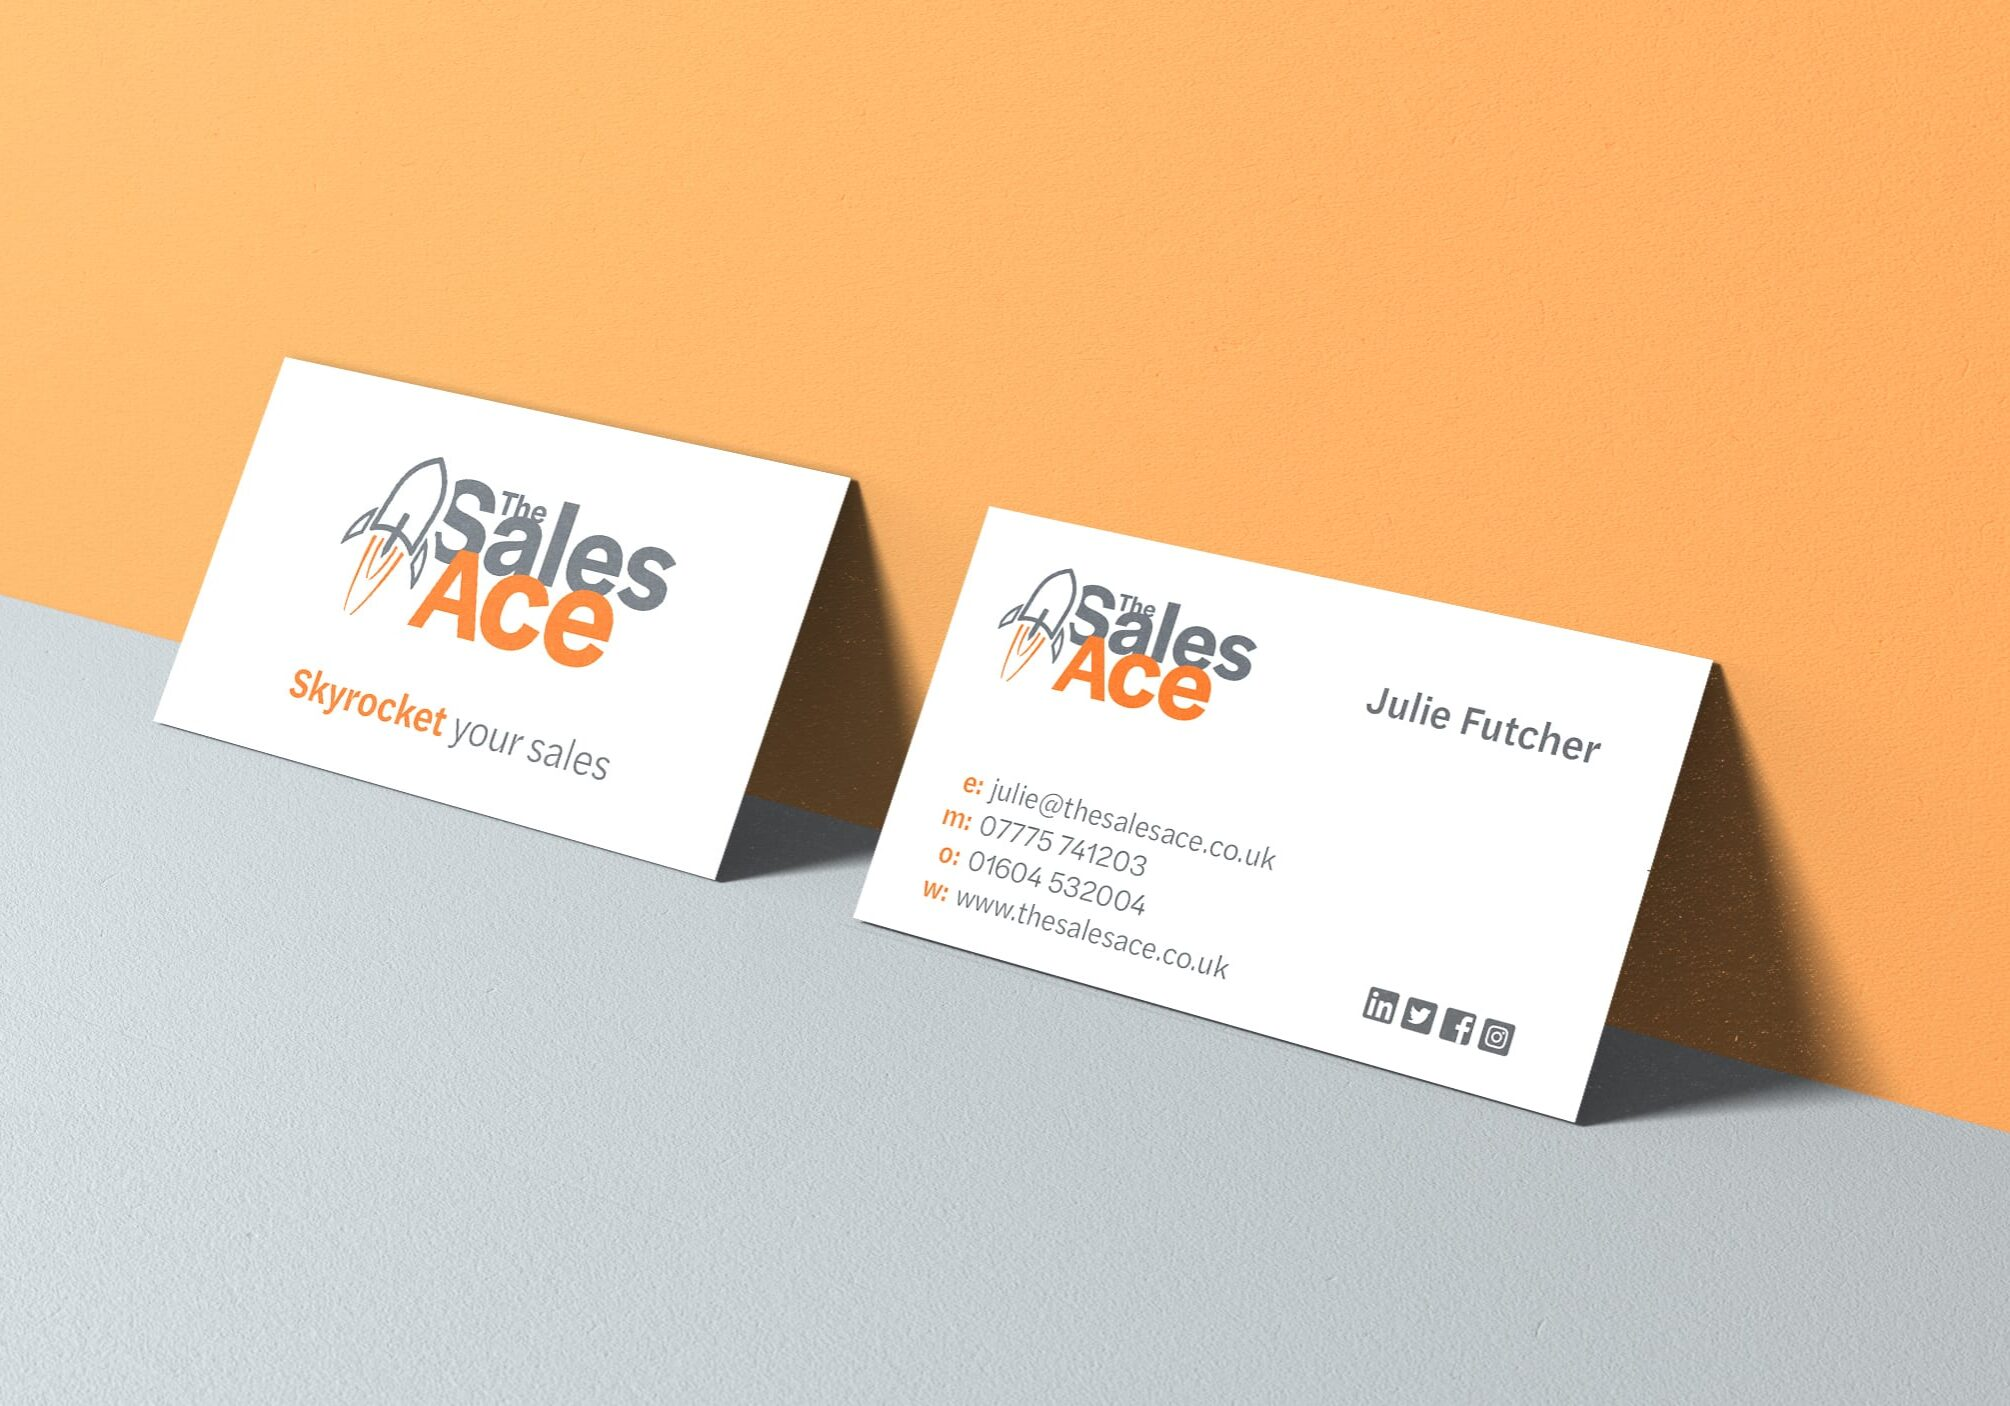 Design for The Sales Ace business cards using new logo